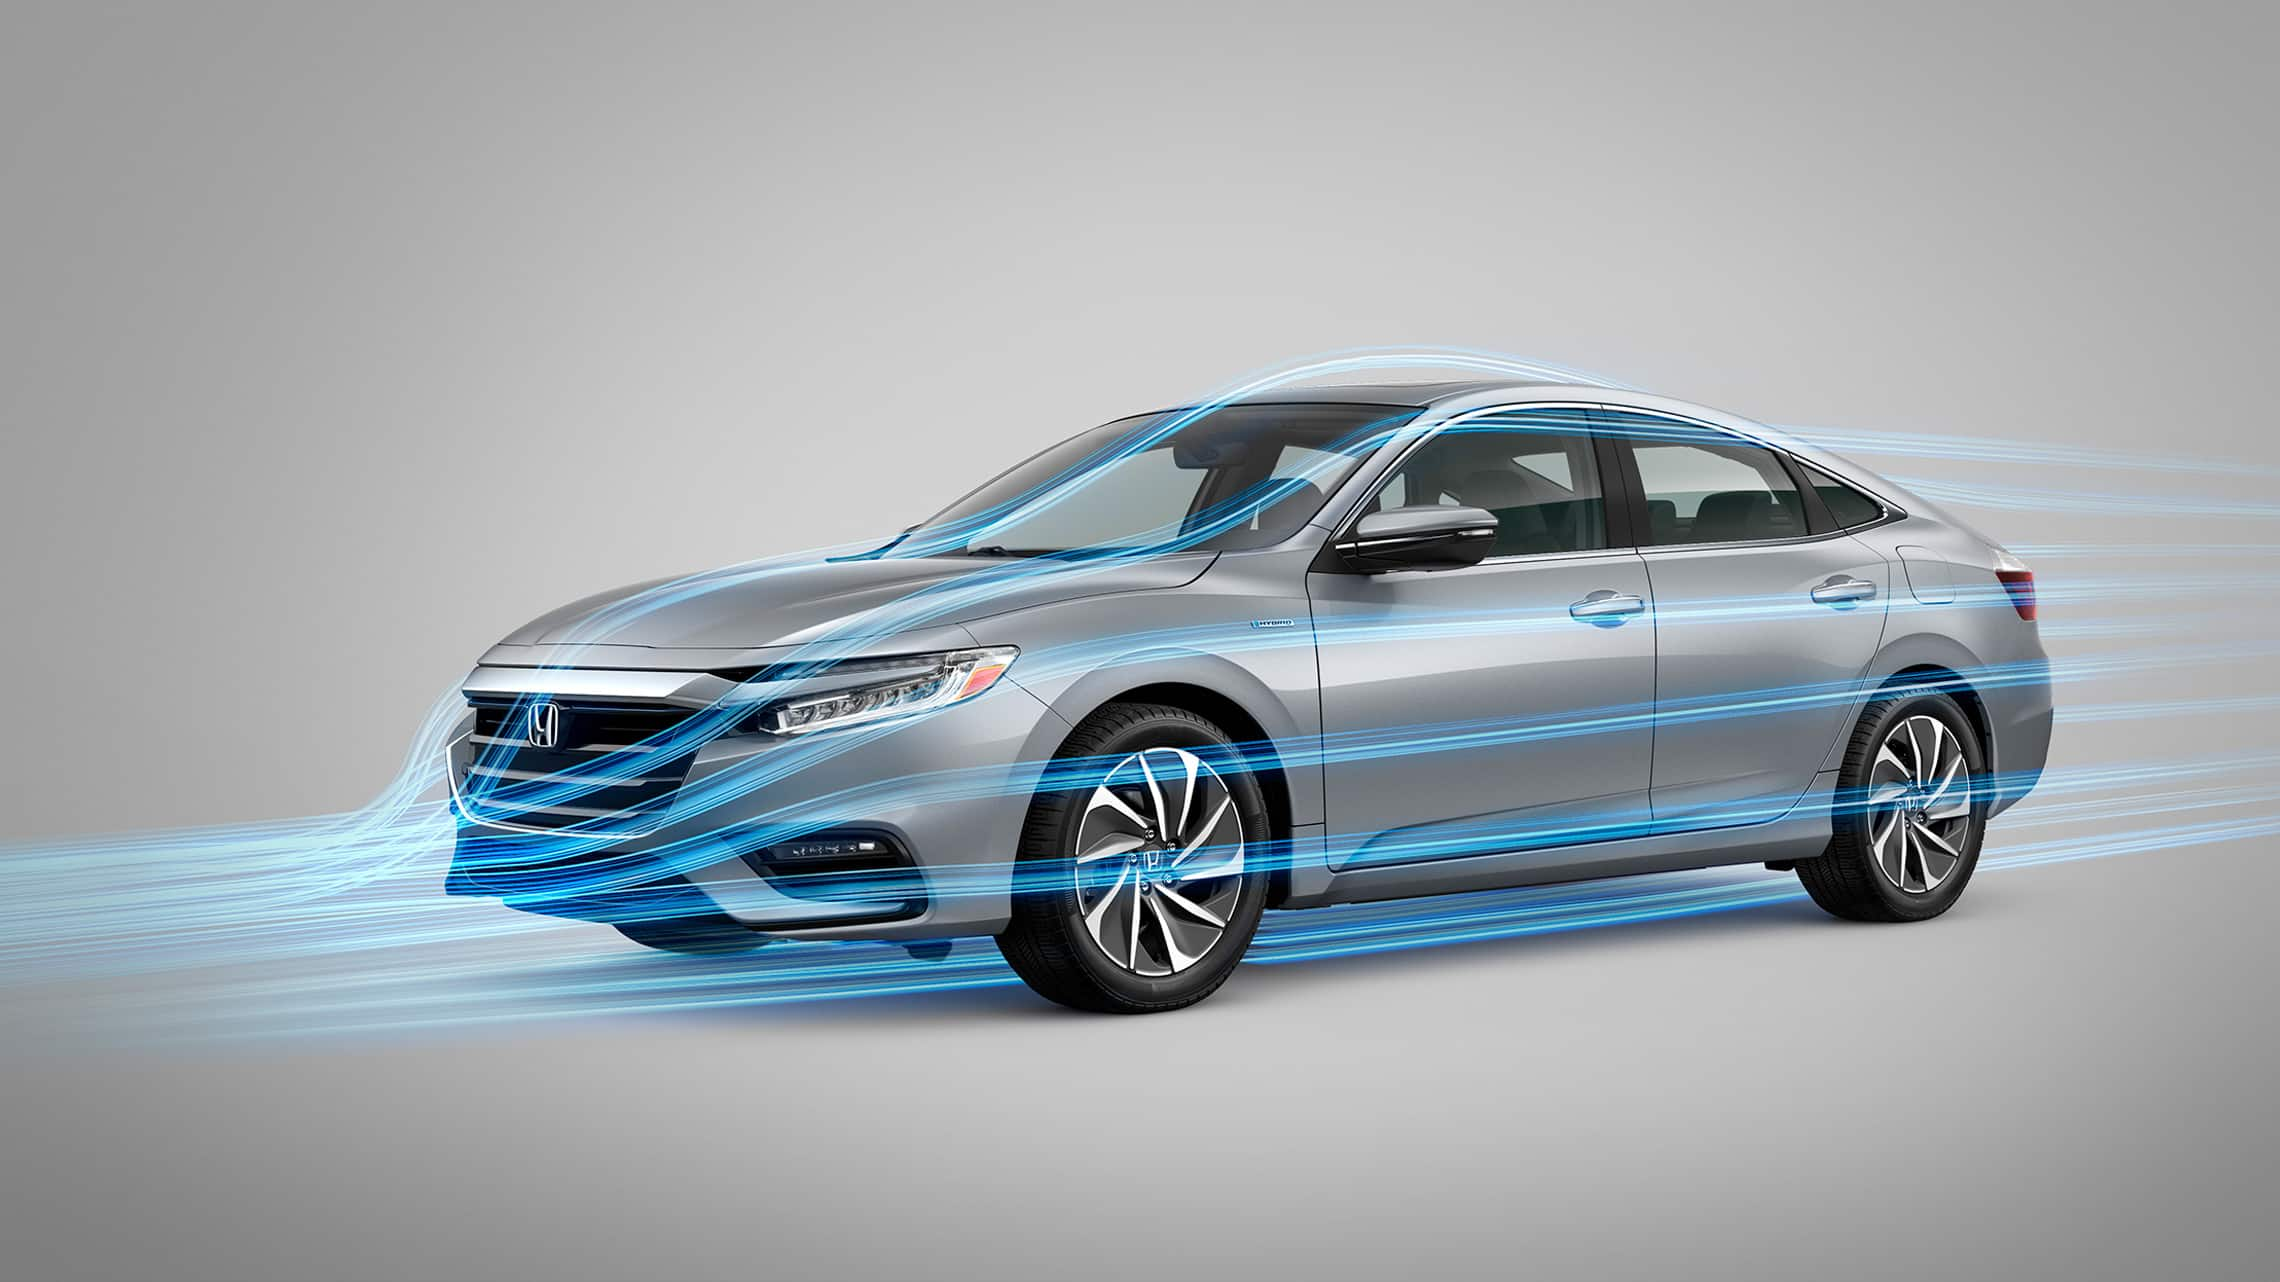 Front driver-side view of 2021 Honda Insight Touring in Lunar Silver Metallic with slipstream graphic overlay.